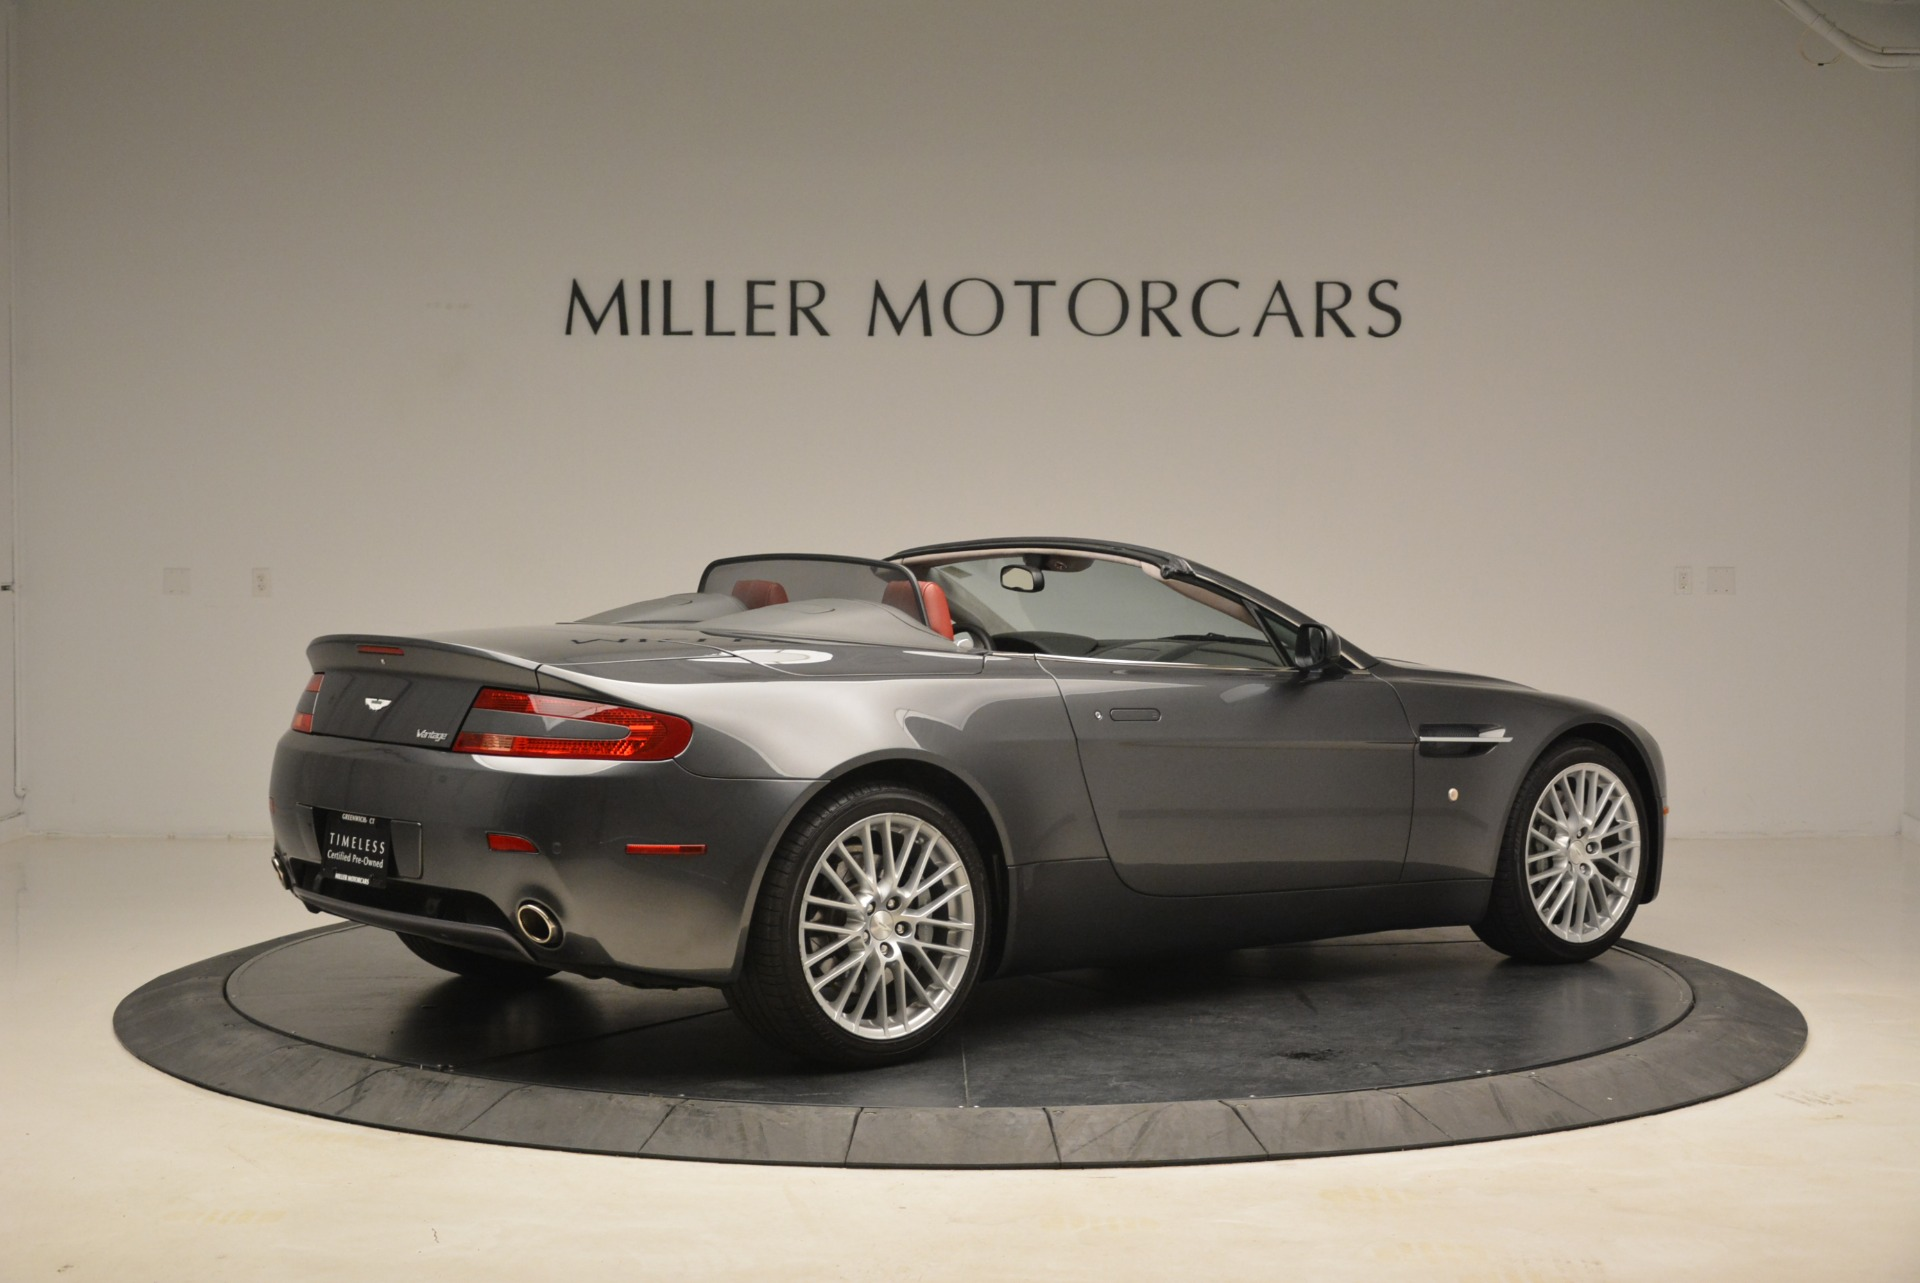 Used 2009 Aston Martin V8 Vantage Roadster For Sale In Greenwich, CT 2123_p8